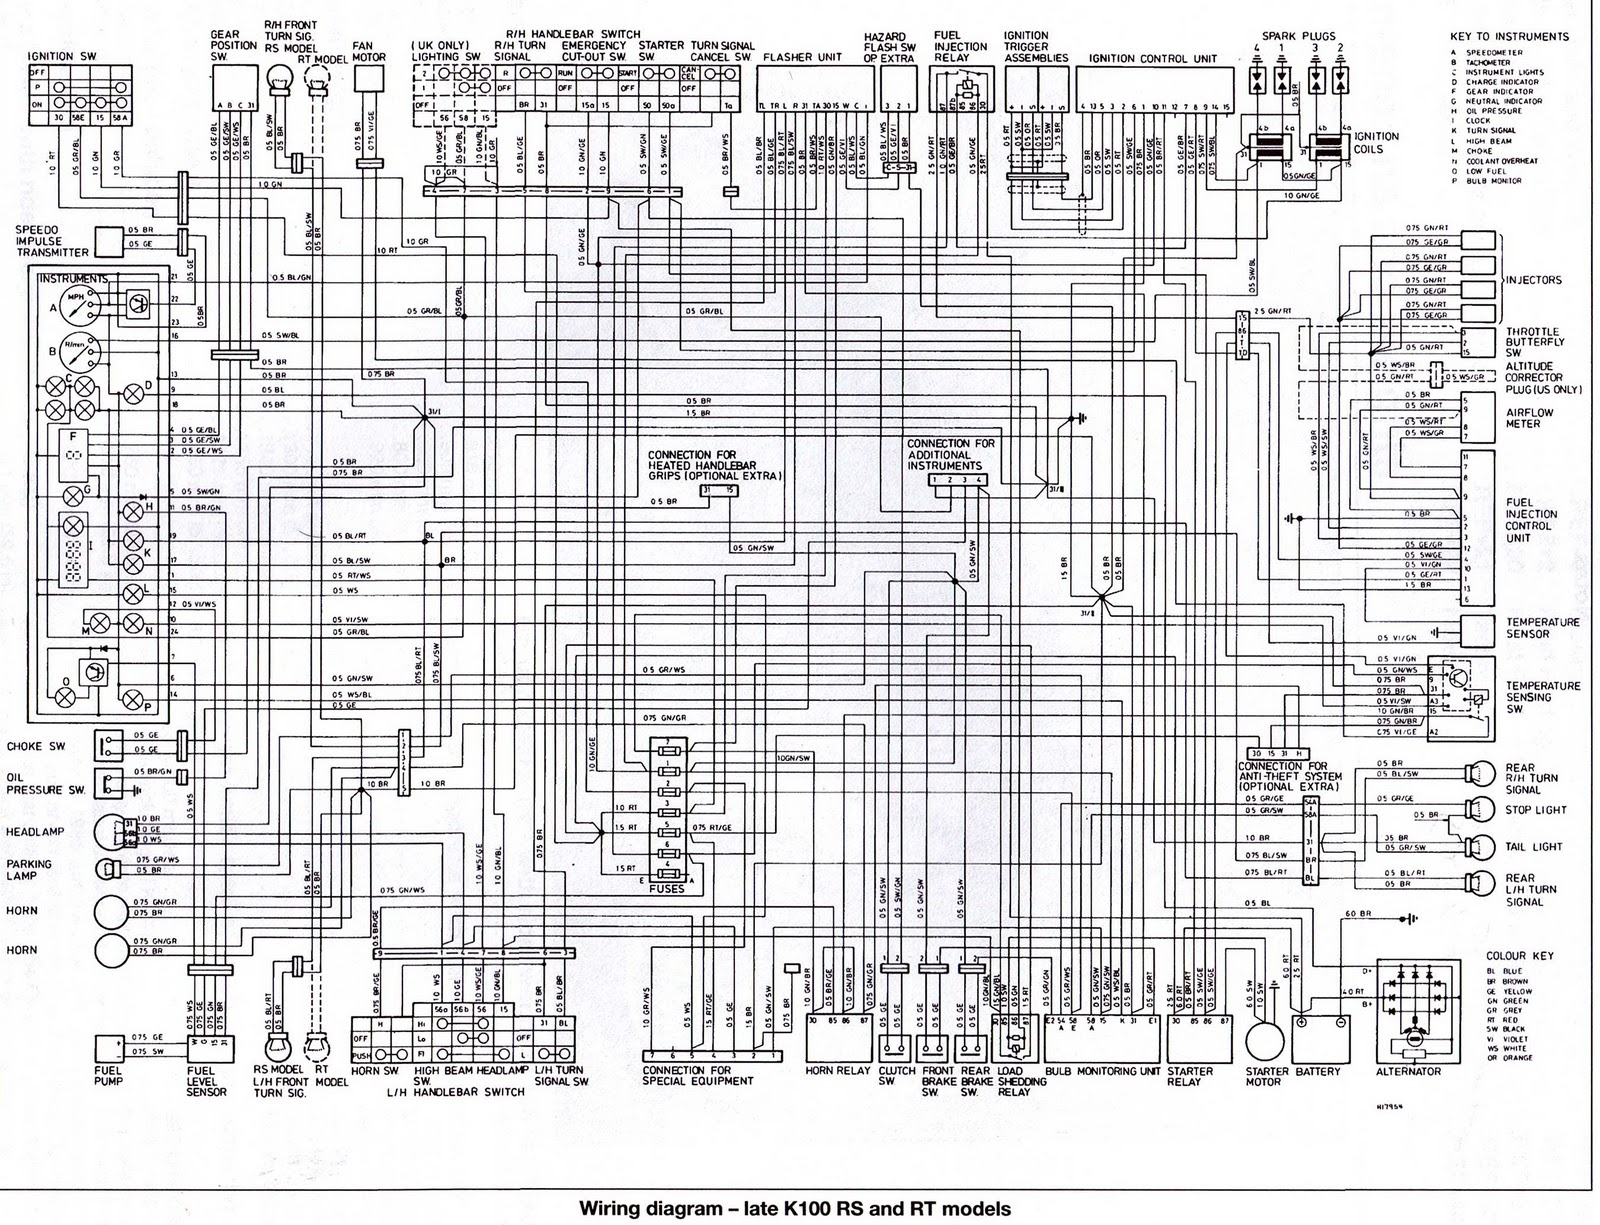 BMW+KR100RS RT+Wiring+Diagram bmw e38 wiring diagram bmw wds download \u2022 free wiring diagrams bmw e38 radio wiring diagram at nearapp.co